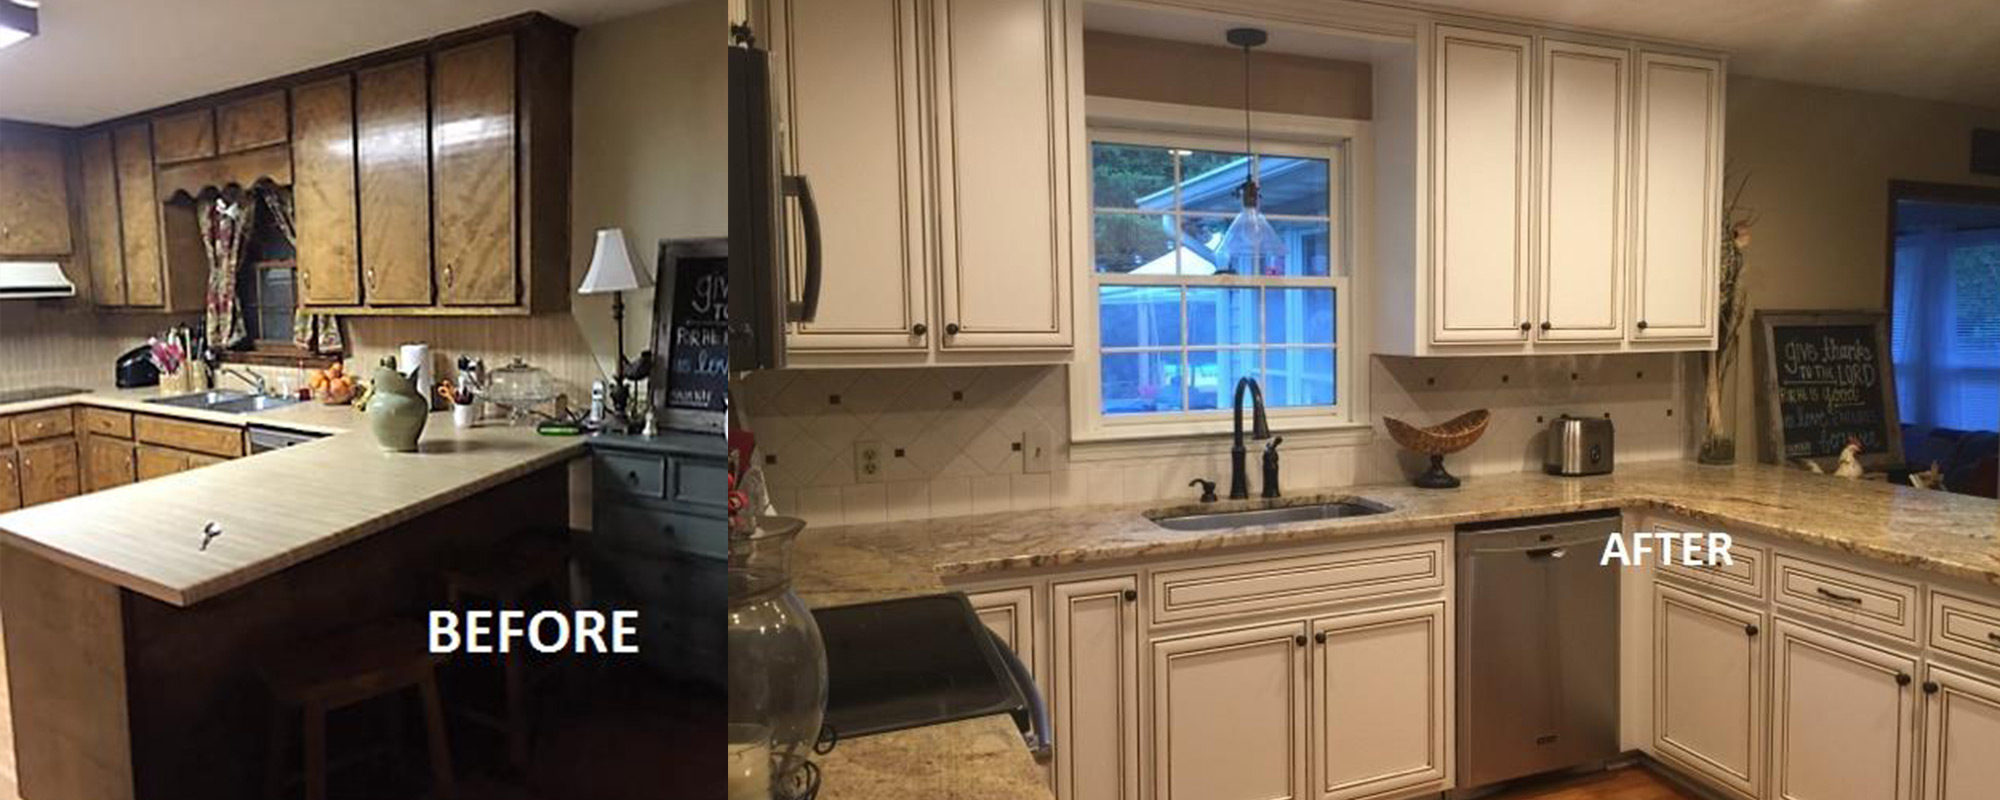 Cabinet refacing in atlanta custom cabinet contractor in ga for Atlanta kitchen cabinets